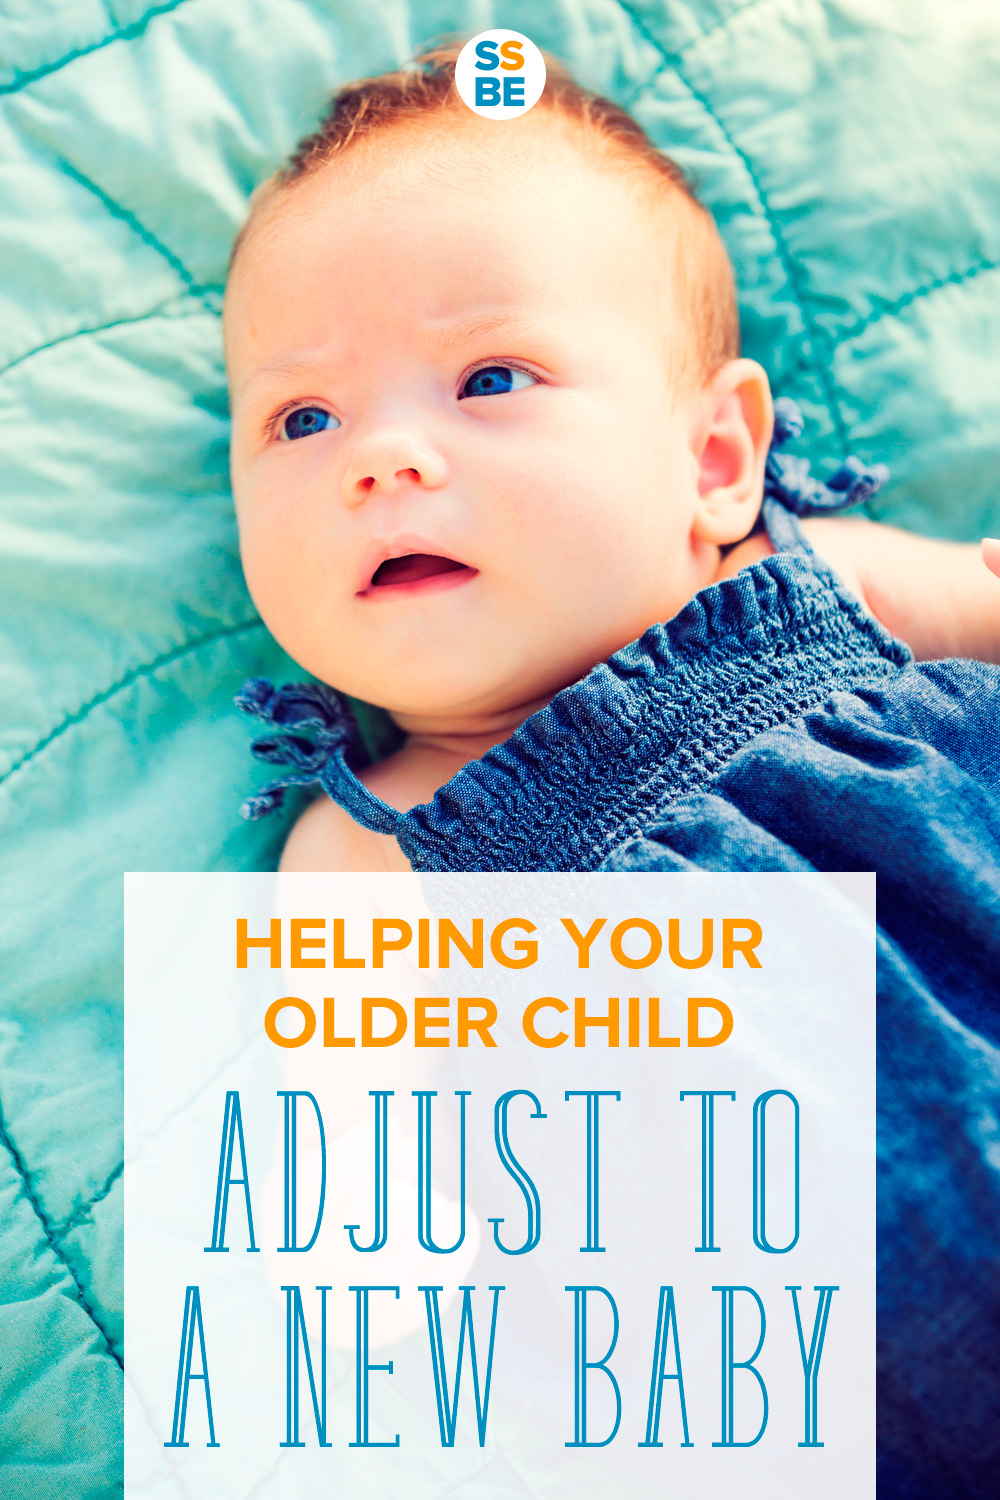 Anxious about how your child will take to the new baby? Introducing a new baby can be tough. Here are tips on how to adjust to a new baby in the house.